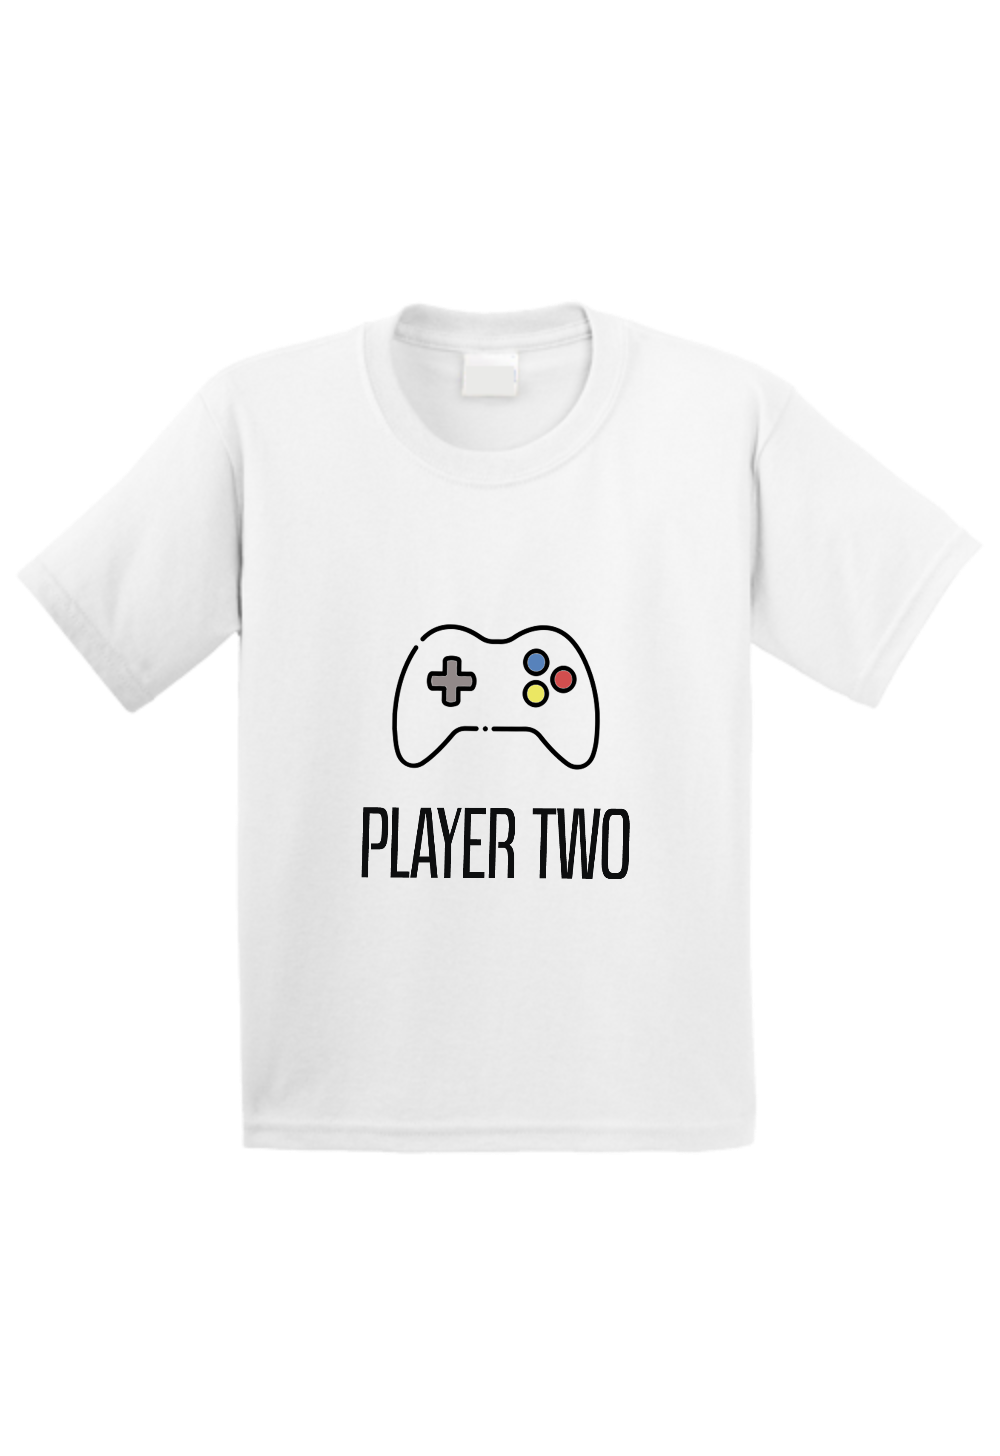 Player two toddler t-shirt